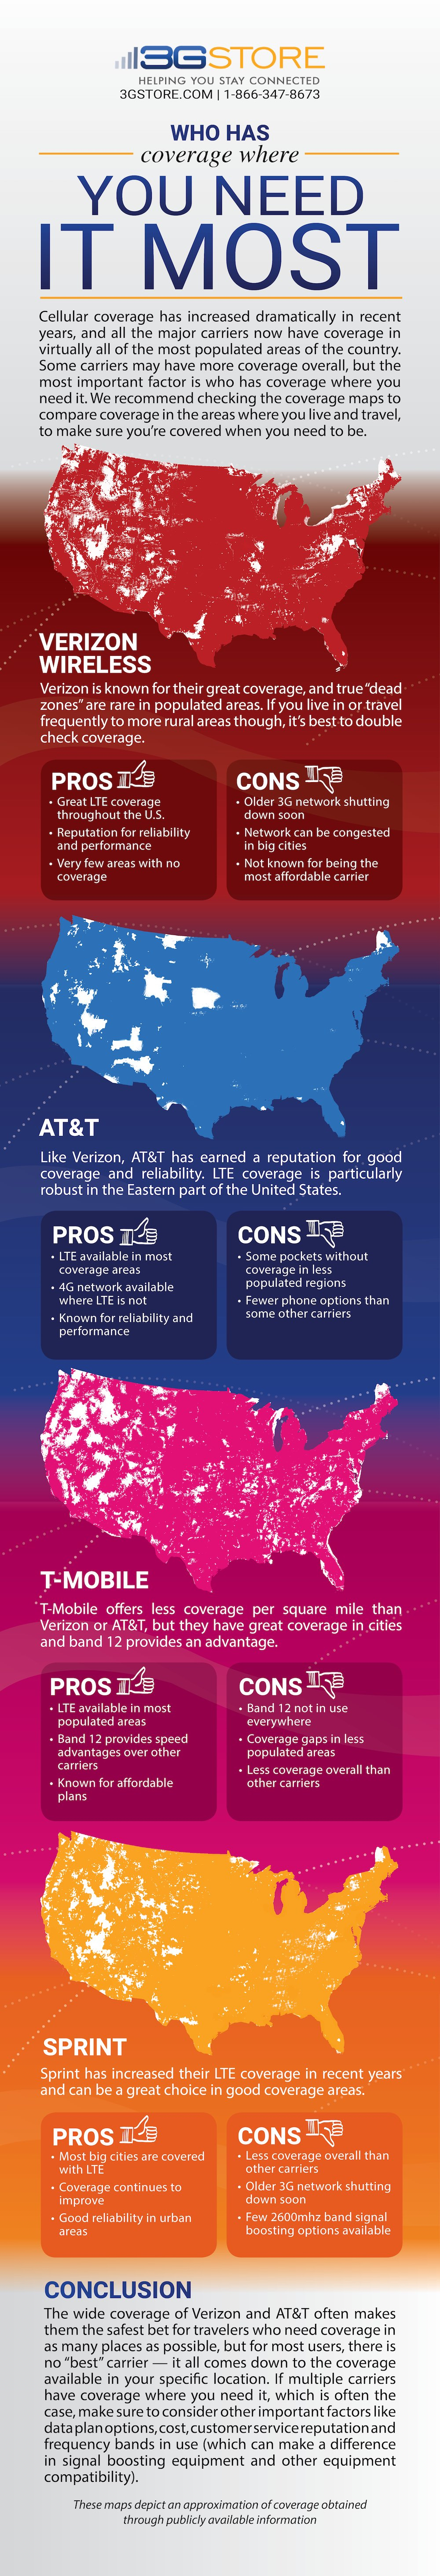 3G/4G Coverage Maps - Verizon, At&t, T-Mobile And Sprint - Verizon Coverage Map Florida